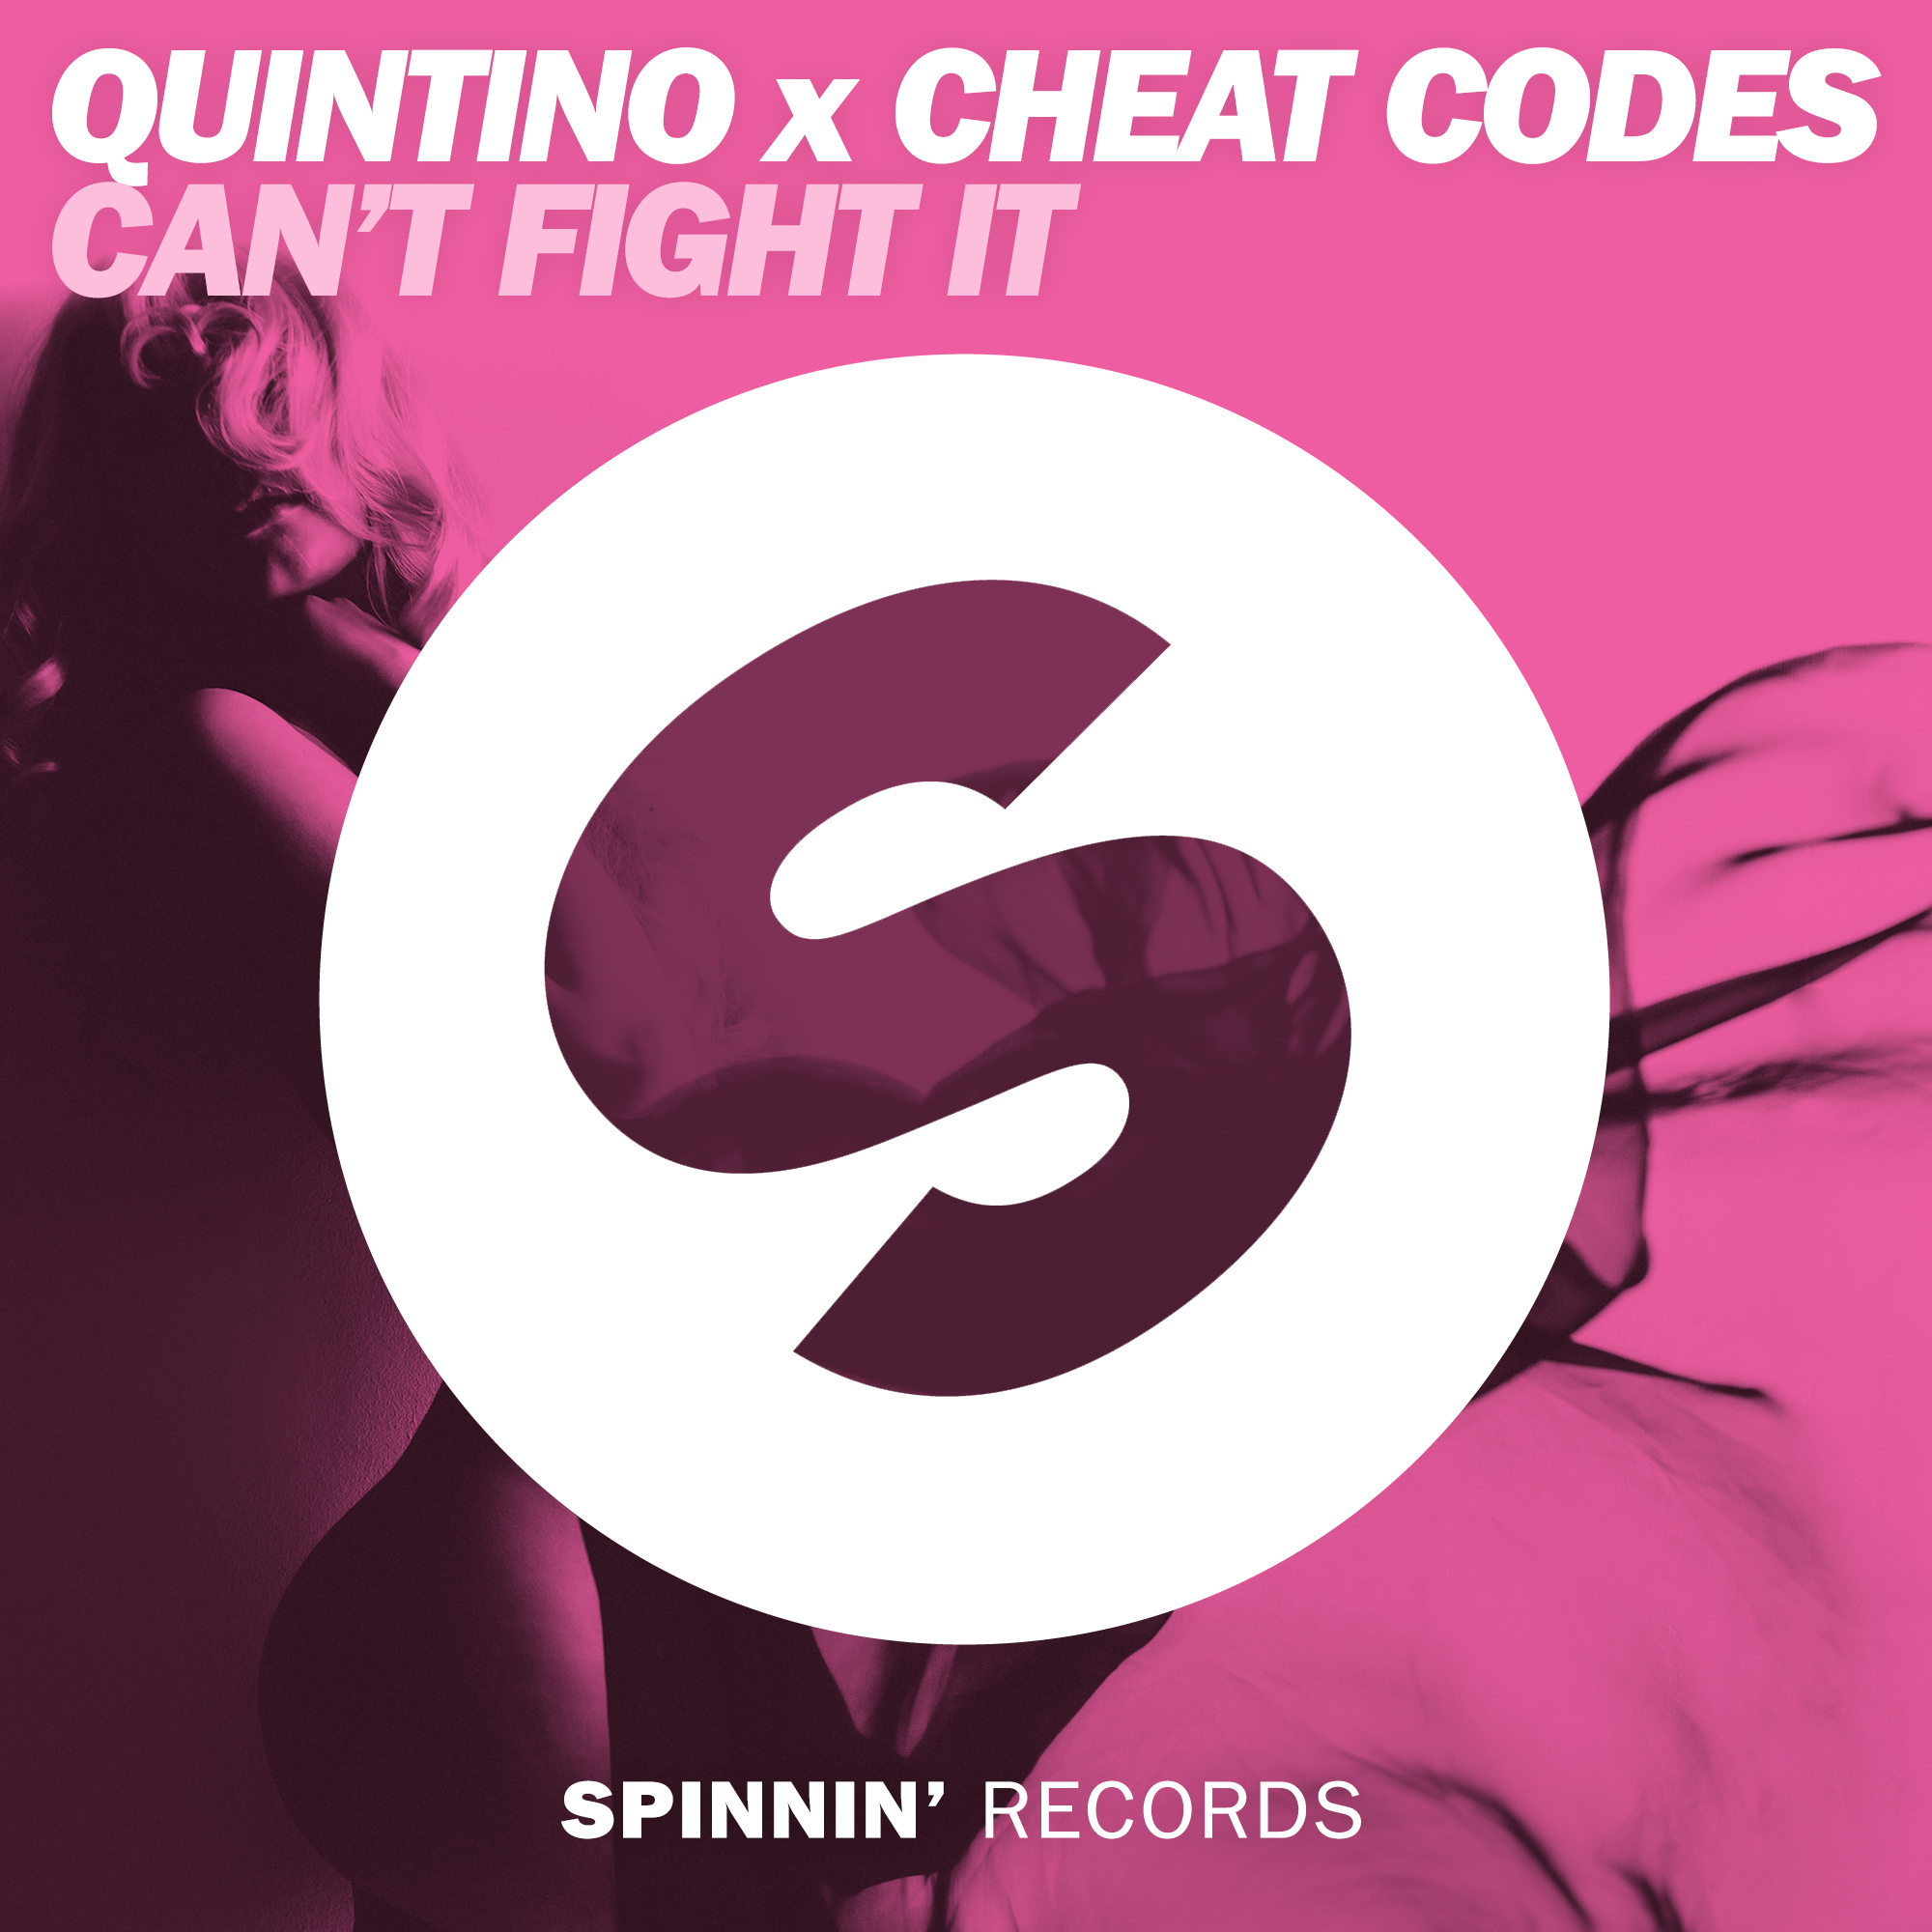 Quintino x Cheat Codes - Cant Fight Iit (Studio Acapella) by